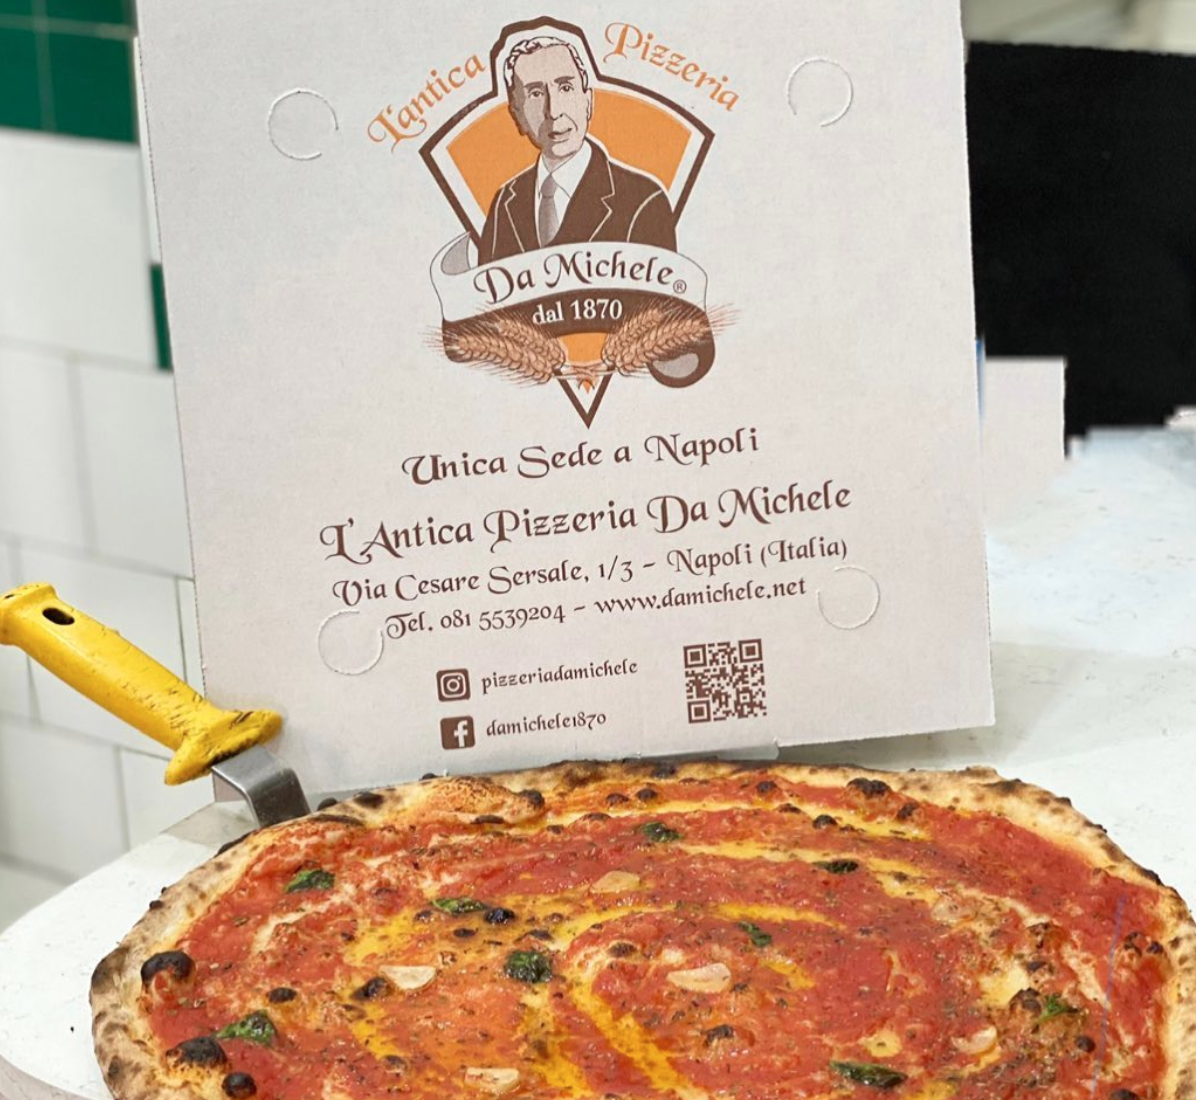 An Italian pizzeria serving 'the best pizza in the world' is coming to King Street, The Manc